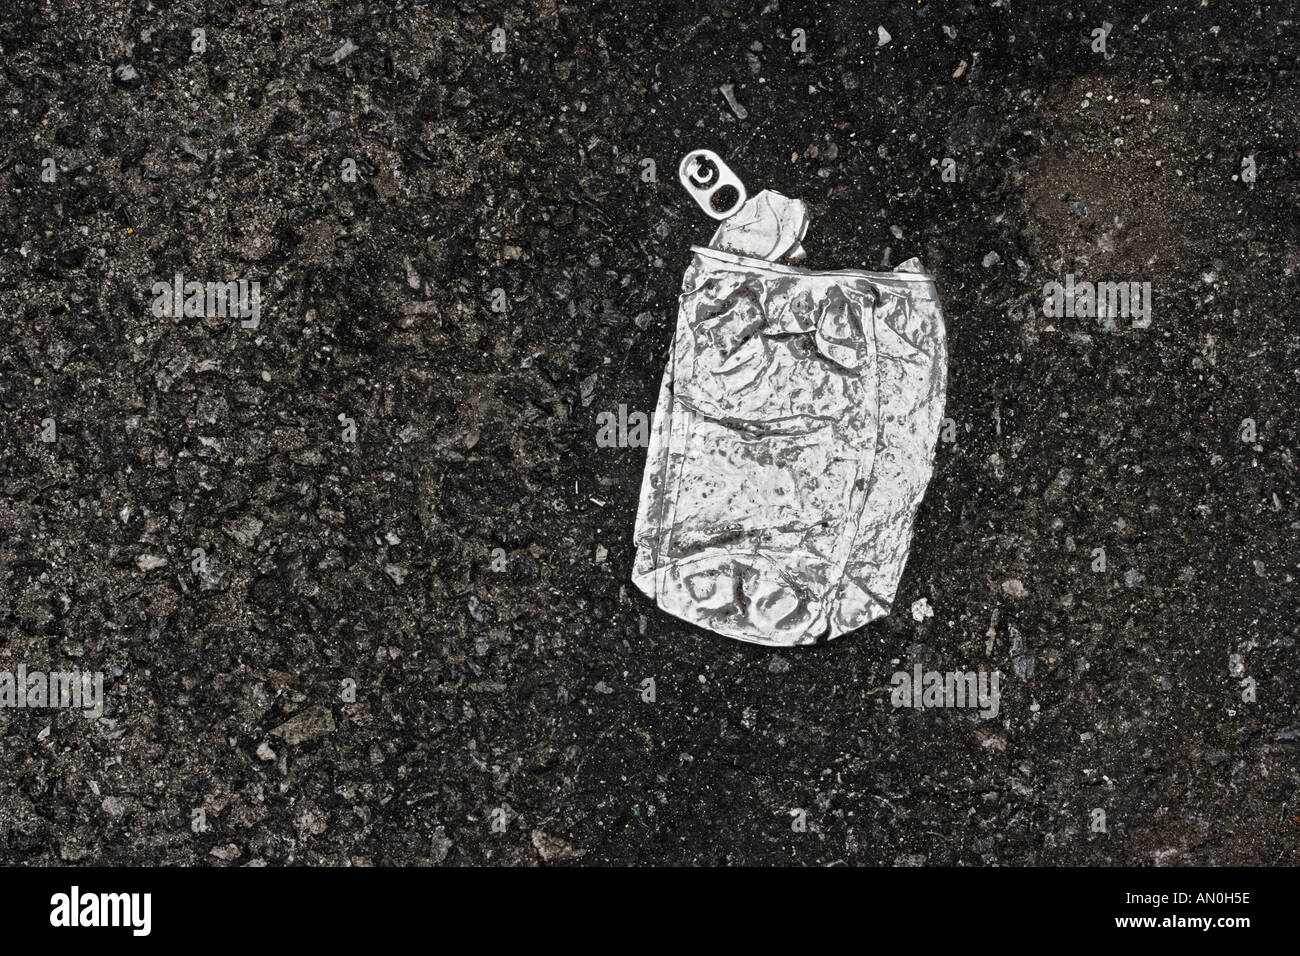 Crushed Soft Drink Can On Asphalt Manhattan - Stock Image